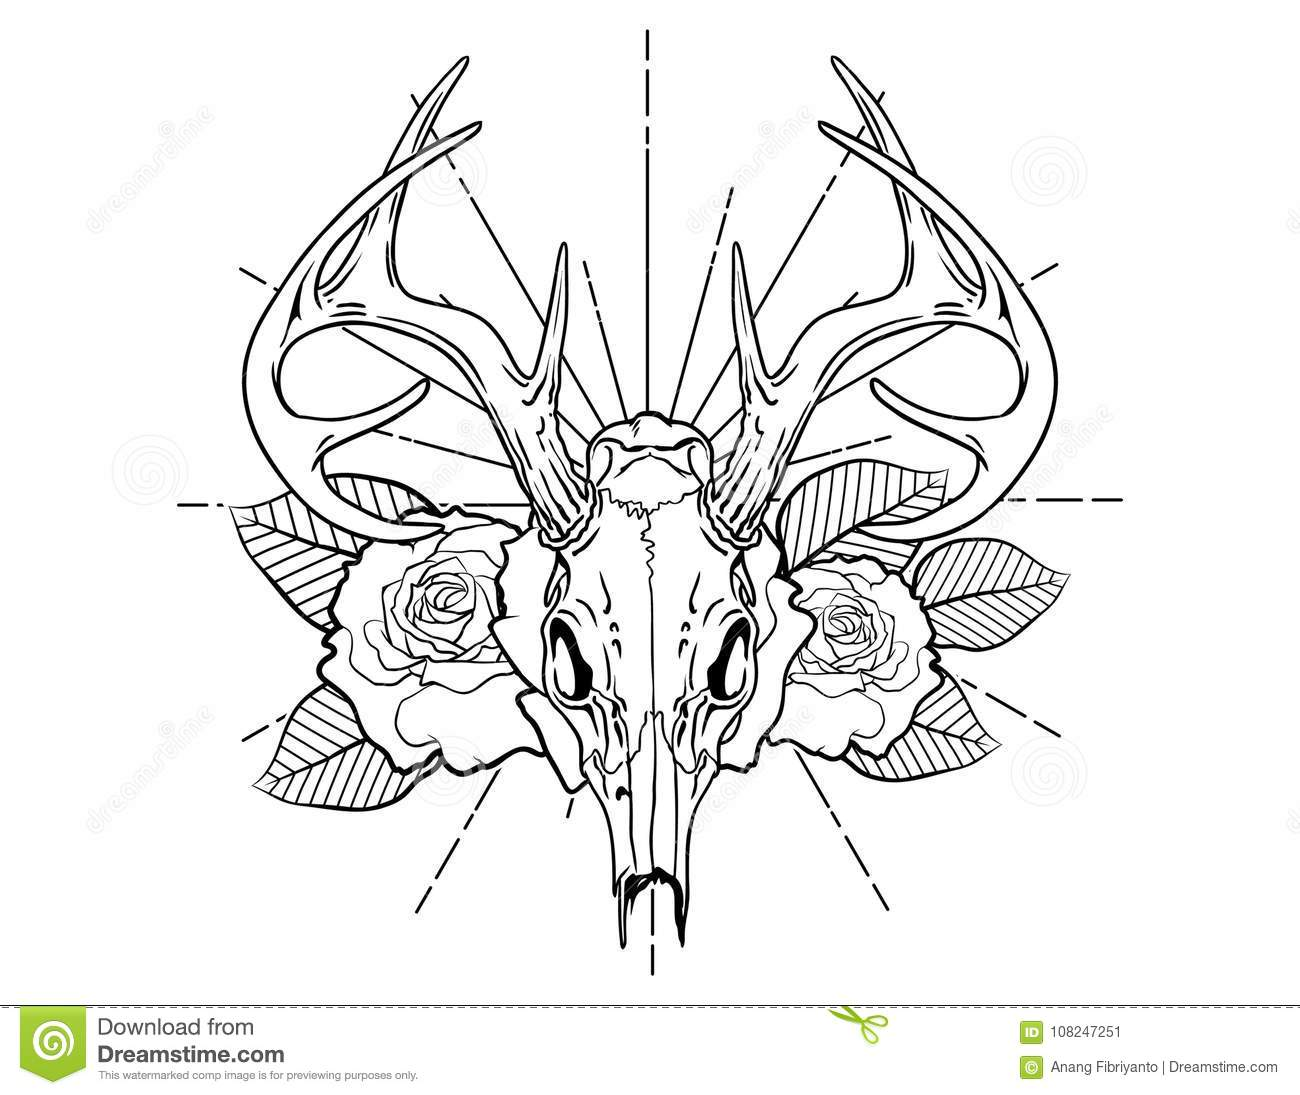 Deer Skull Tattoo Sketch With Roses And Leafes Vintage Neo Traditional Tattoo Sketch Stock Vector Illustration Of Traditional Leafes 108247251